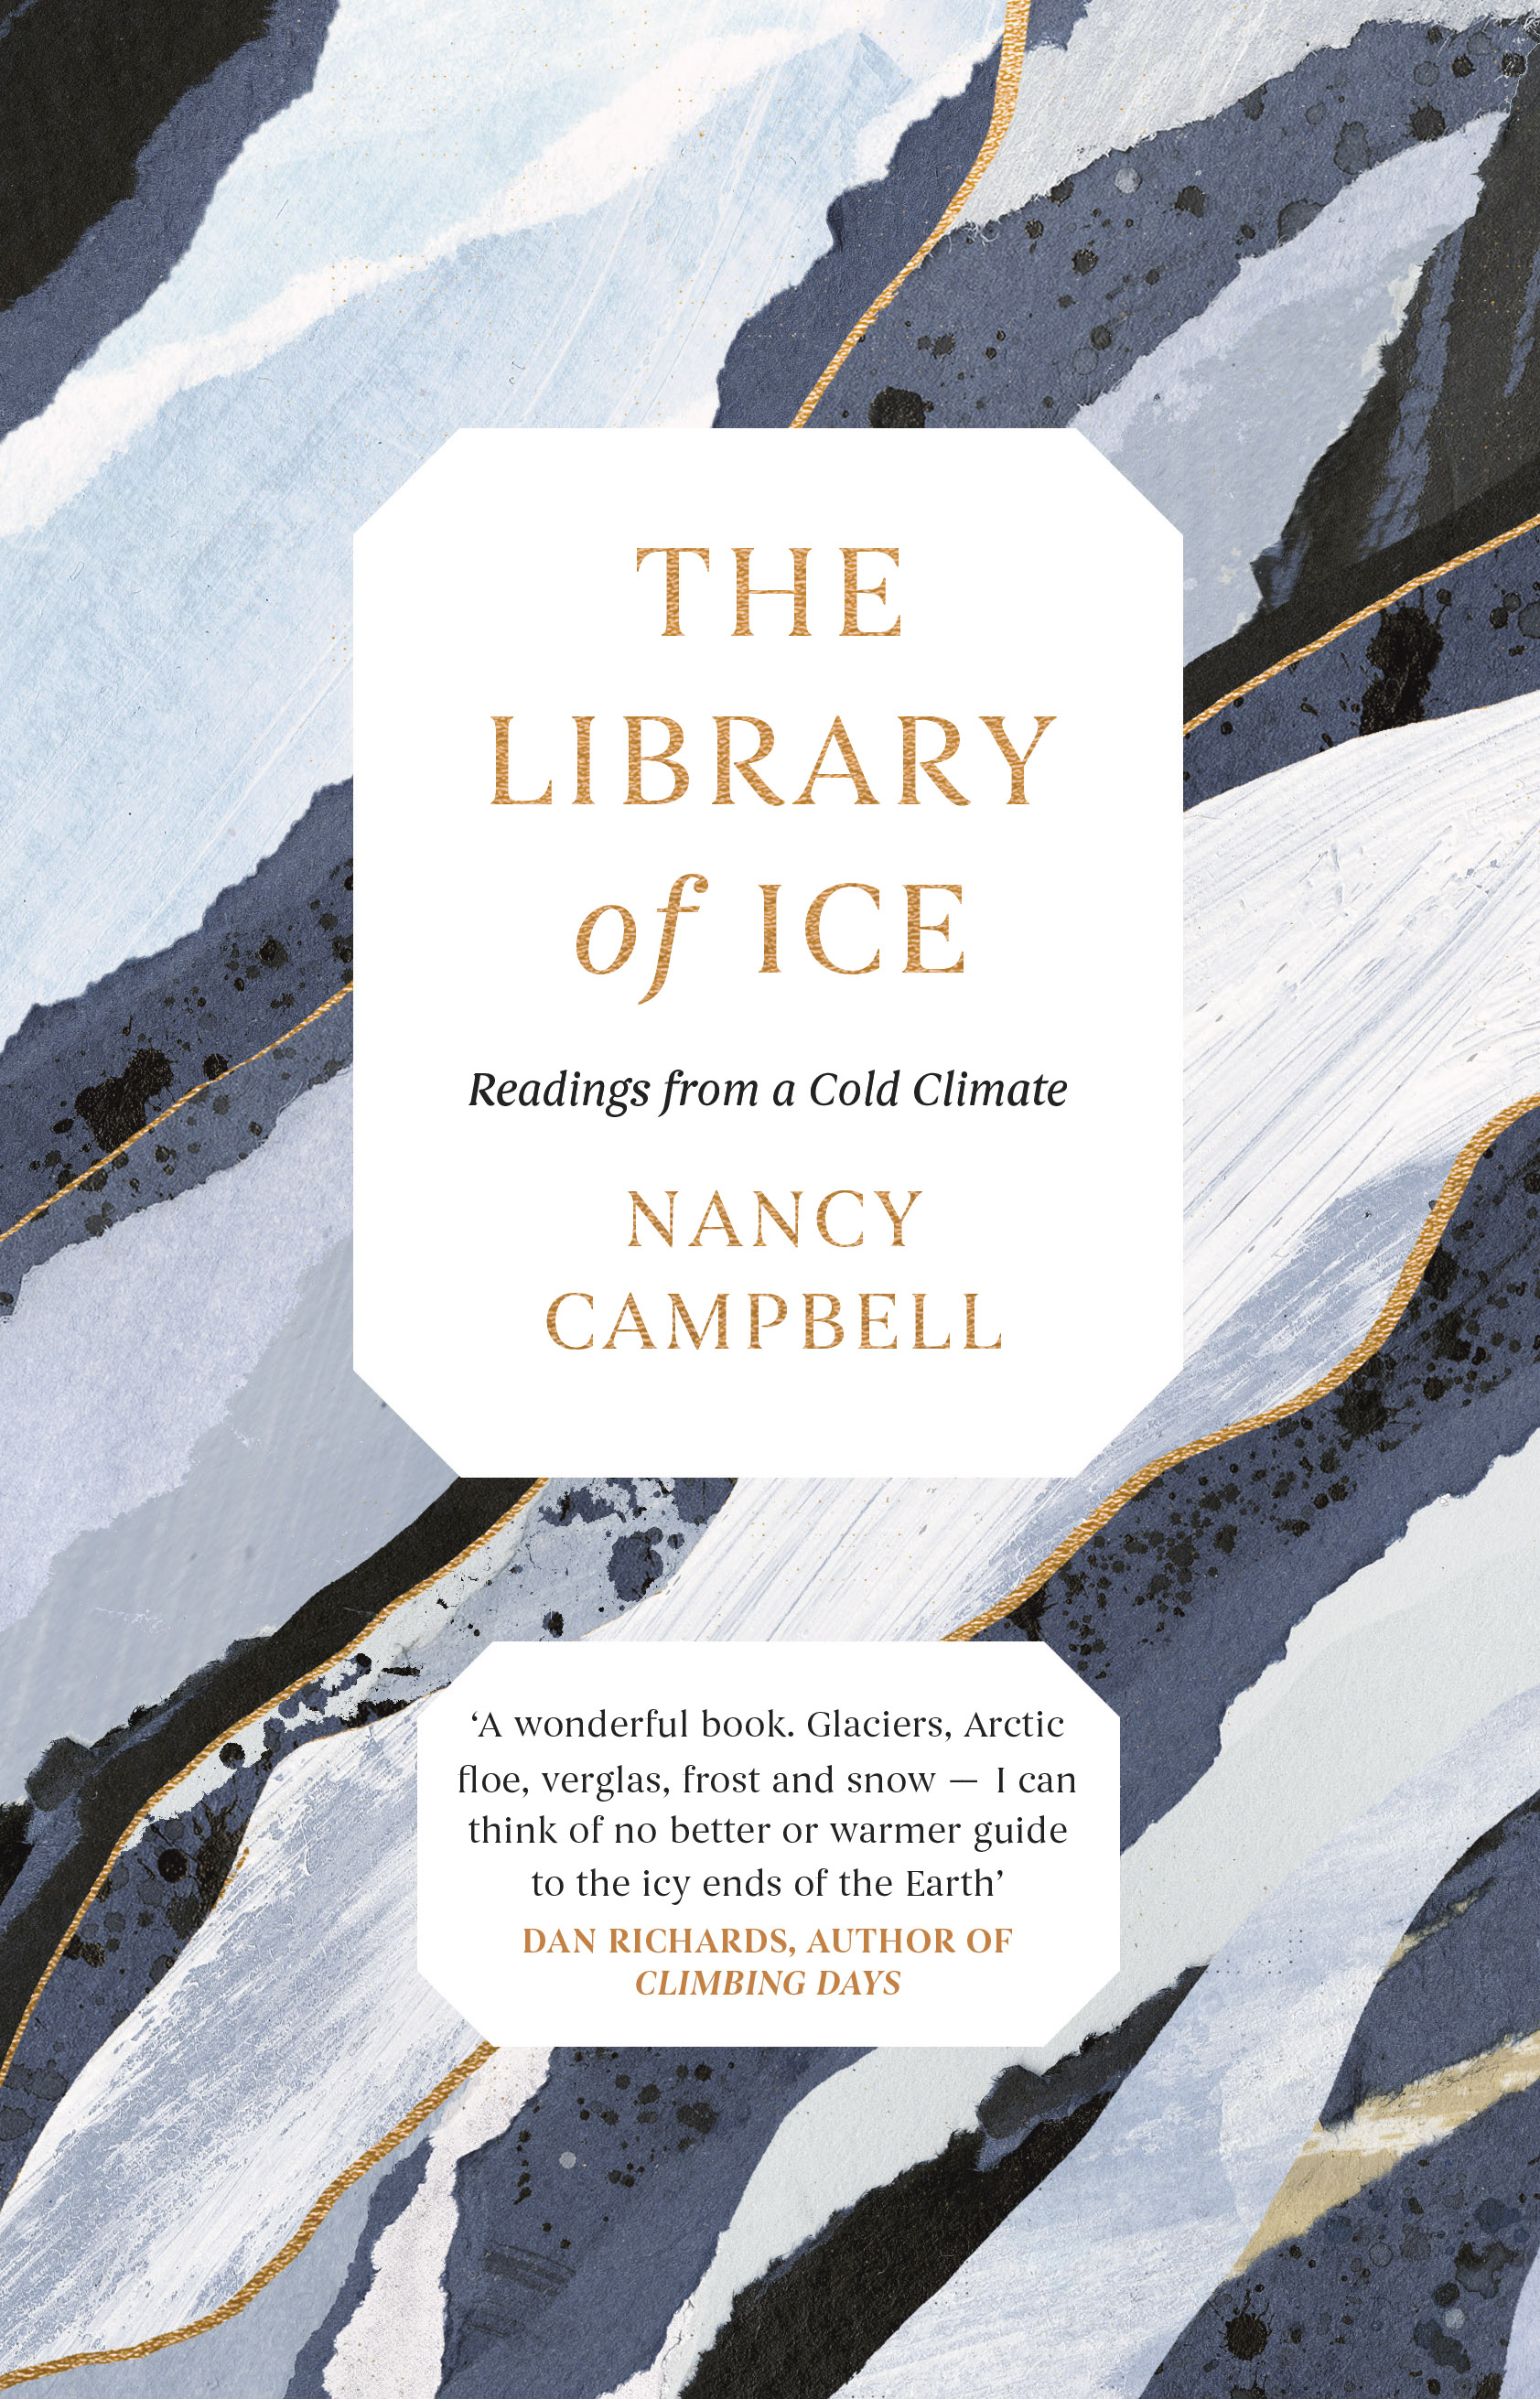 The Library of Ice, Readings from a Cold Climate by Nancy Campbell